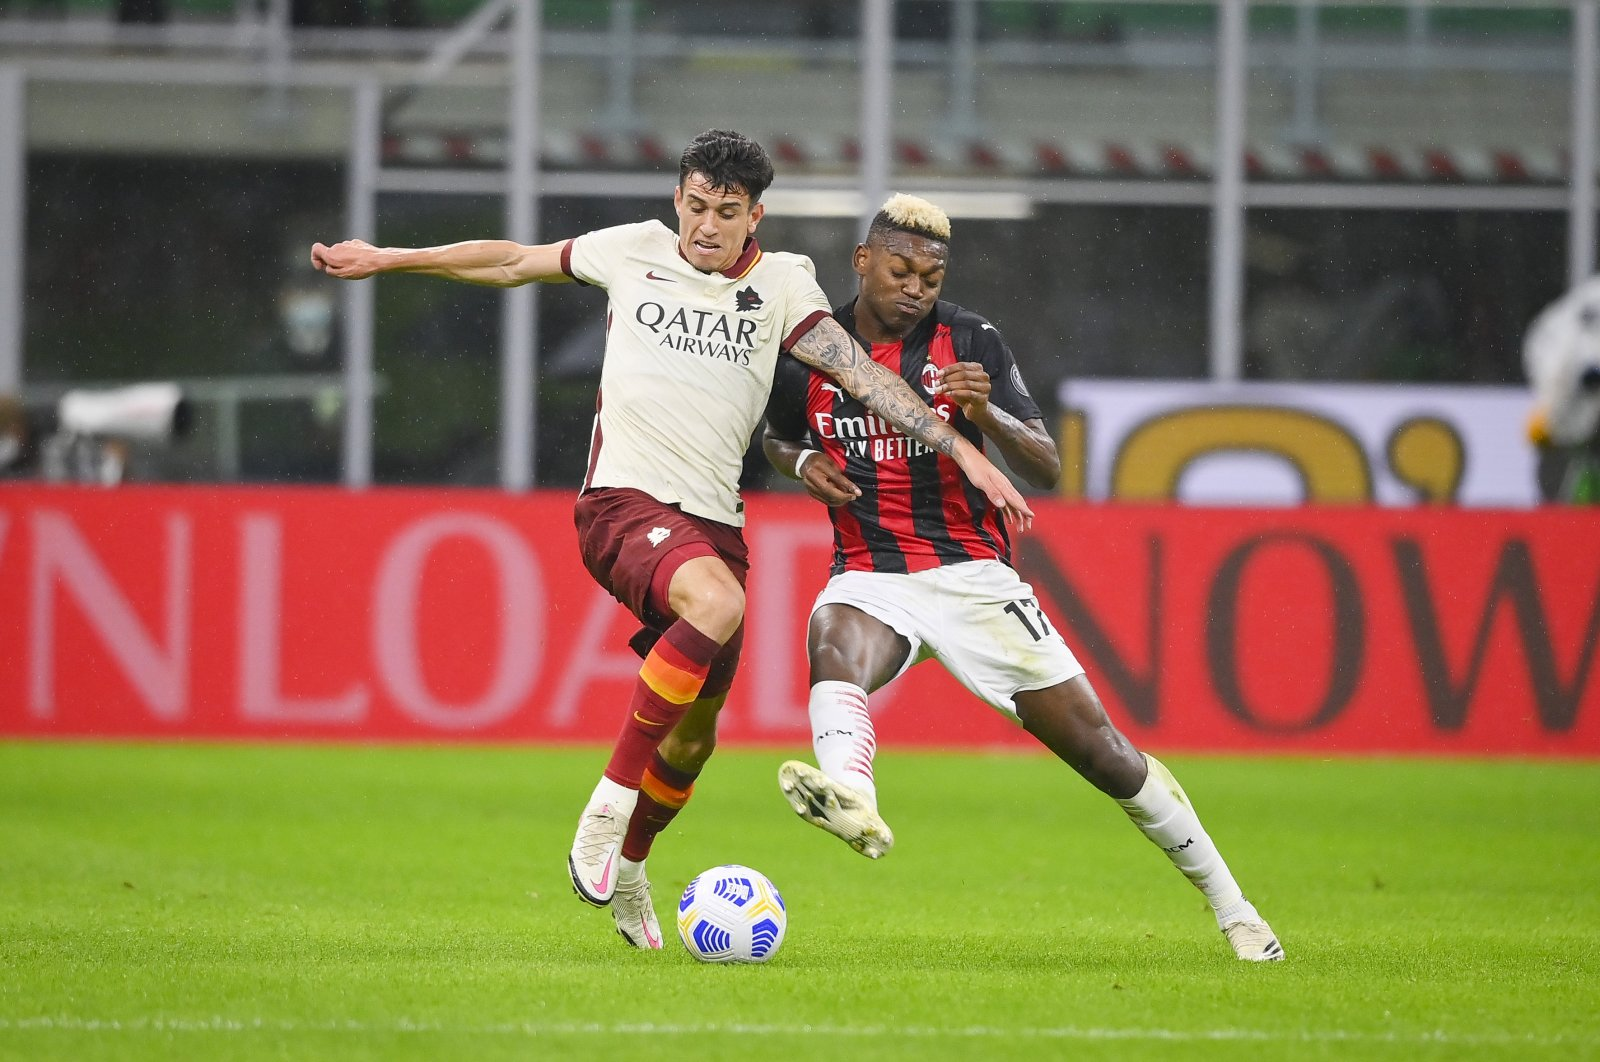 AC Milan's Rafael Leao (R) and Roma's Roger Ibanez vie for the ball during a Serie A match in Milan, Italy, Oct. 26, 2020. (AP Photo)